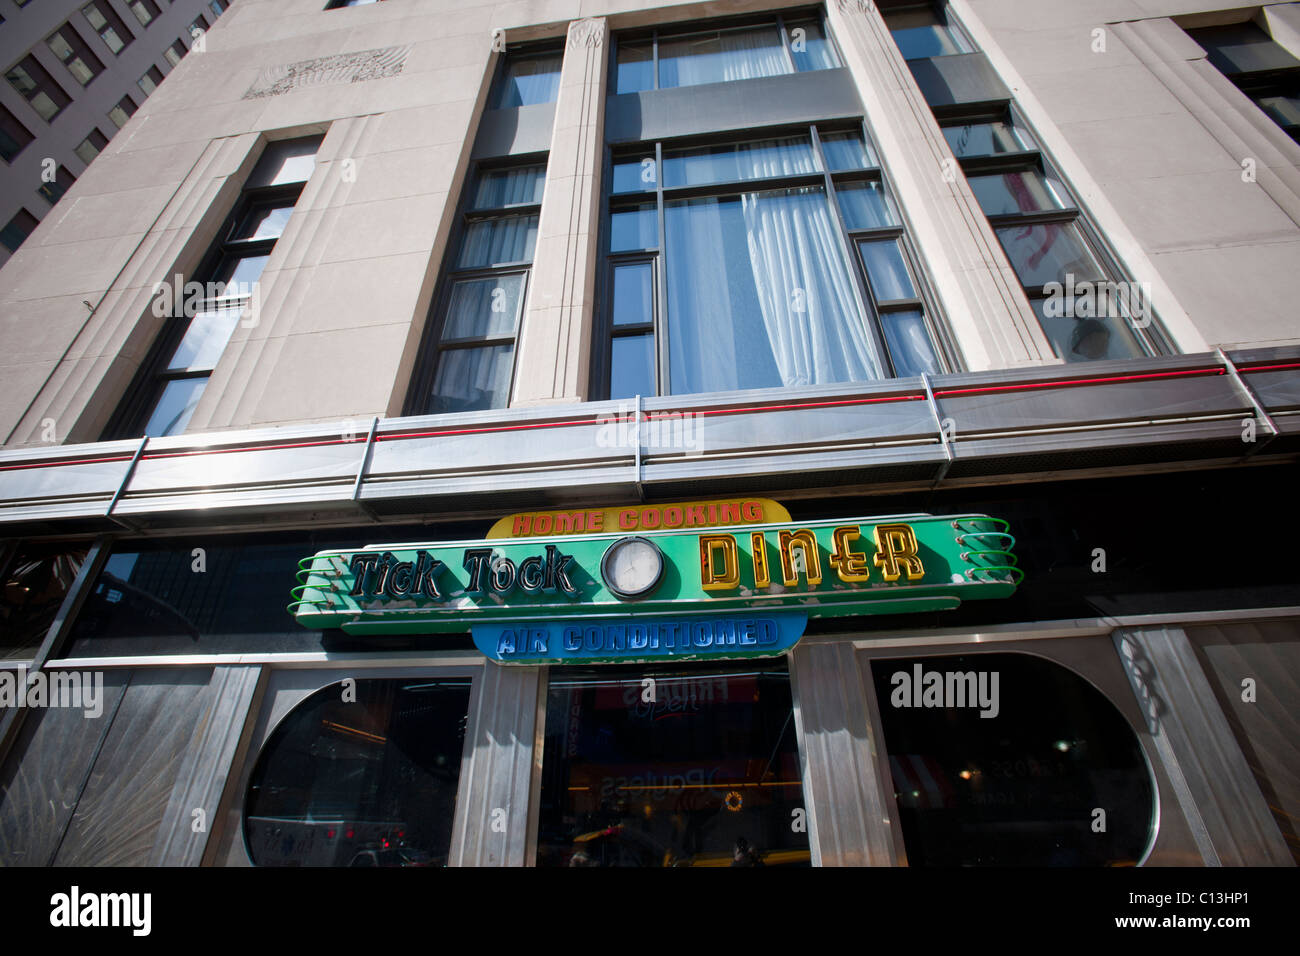 The Tick Tock Diner in the New Yorker Hotel in Midtown Manhattan is seen on Saturday, March 5, 2011. (© Richard - Stock Image